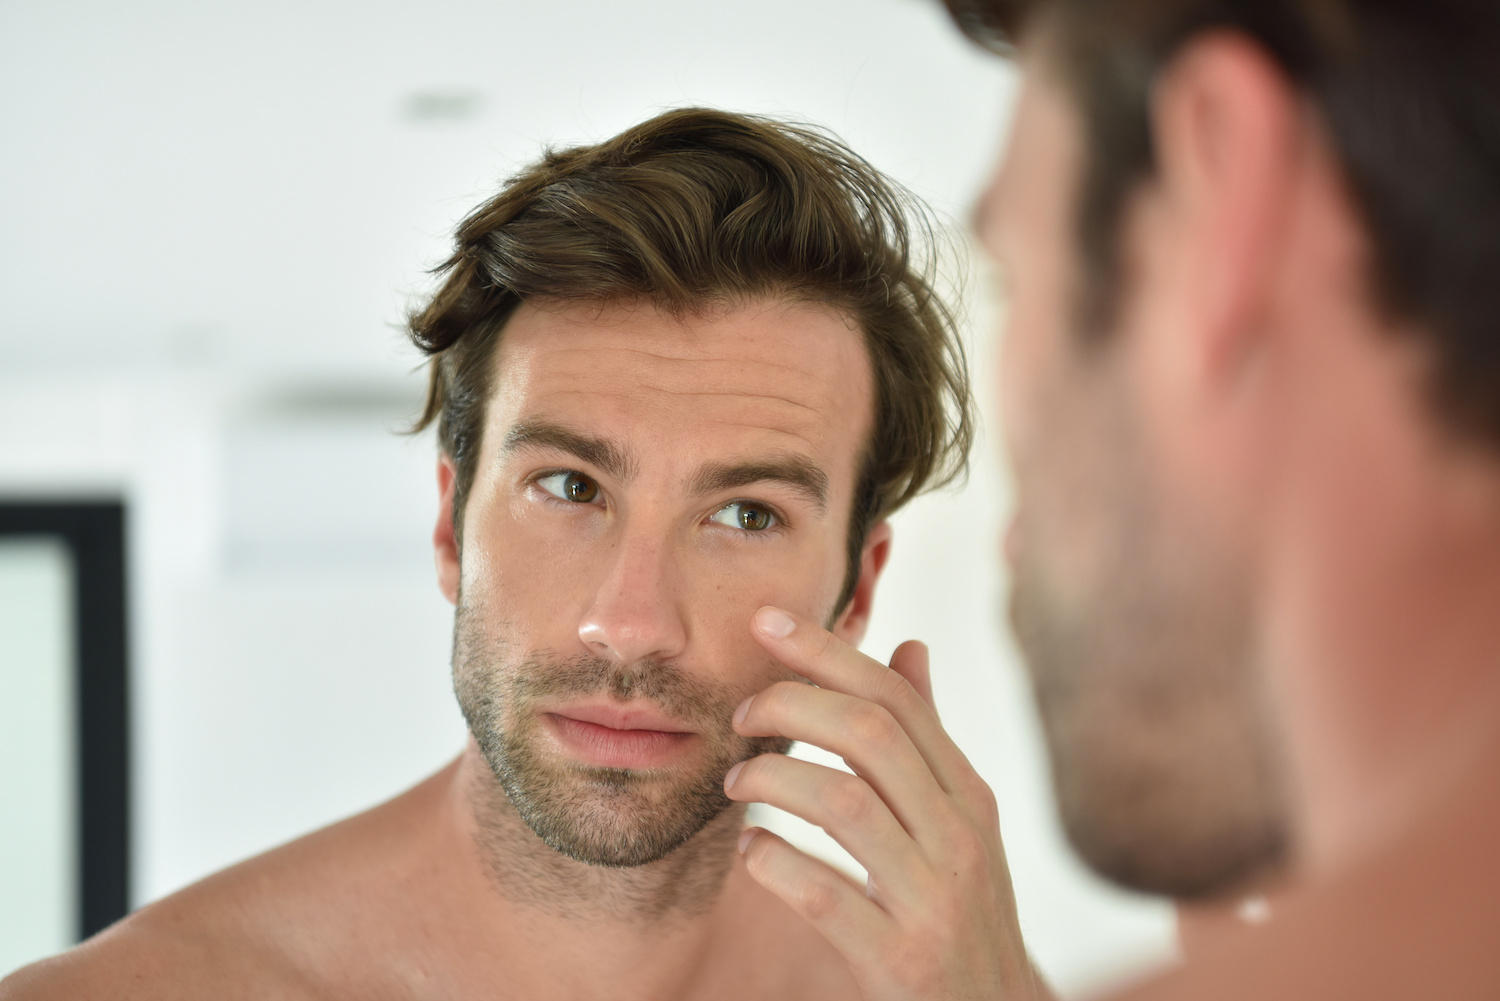 Handsome man looking at cheekbones in front of mirror